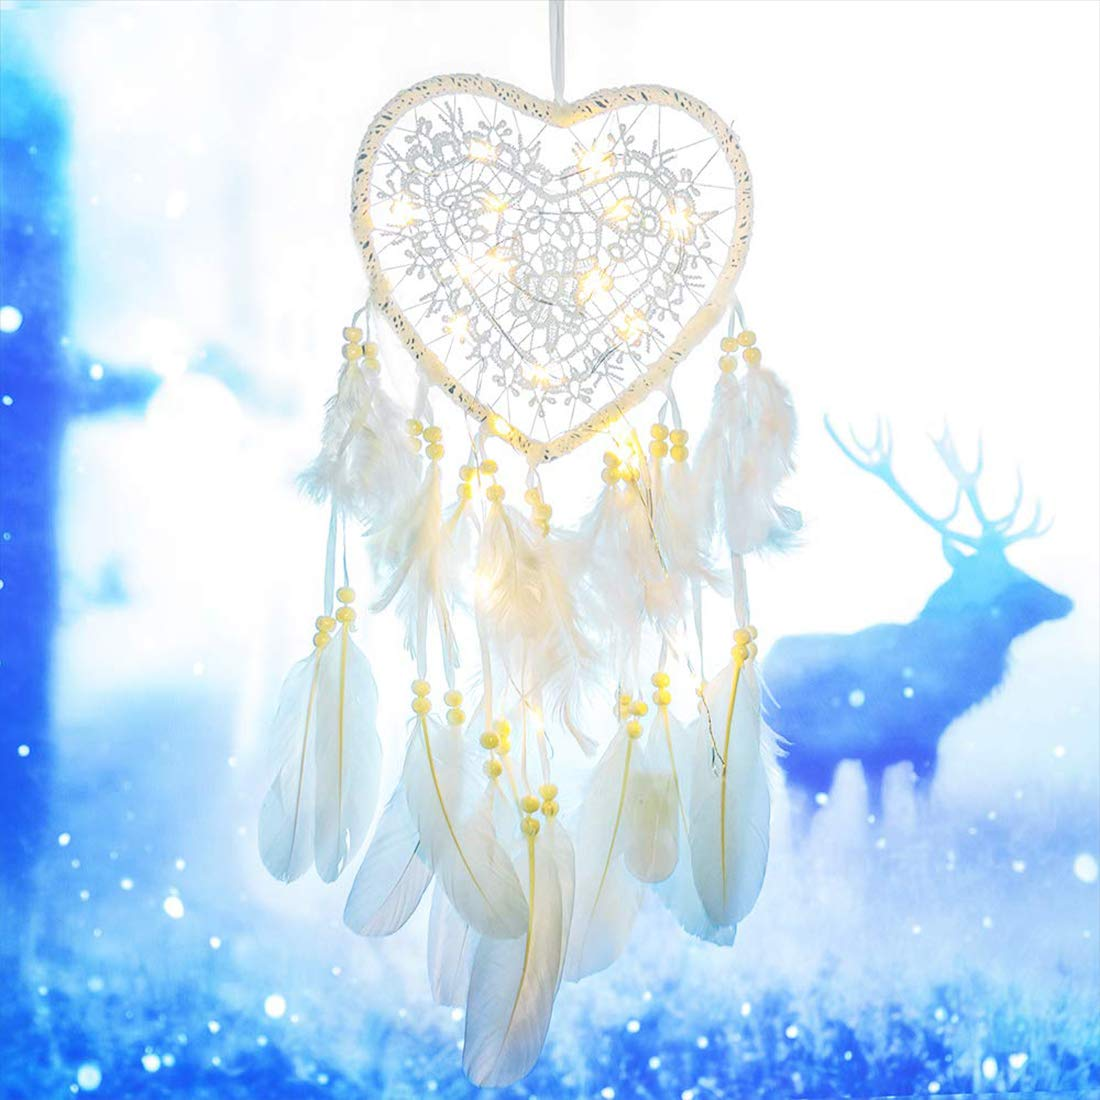 White-Love Handmade Dreamcatcher Feather Indian Wall Hanging Decoration LED Dream Catcher Ornament for Warm Homes Kids Room Living Room Teepee Tents D/écor